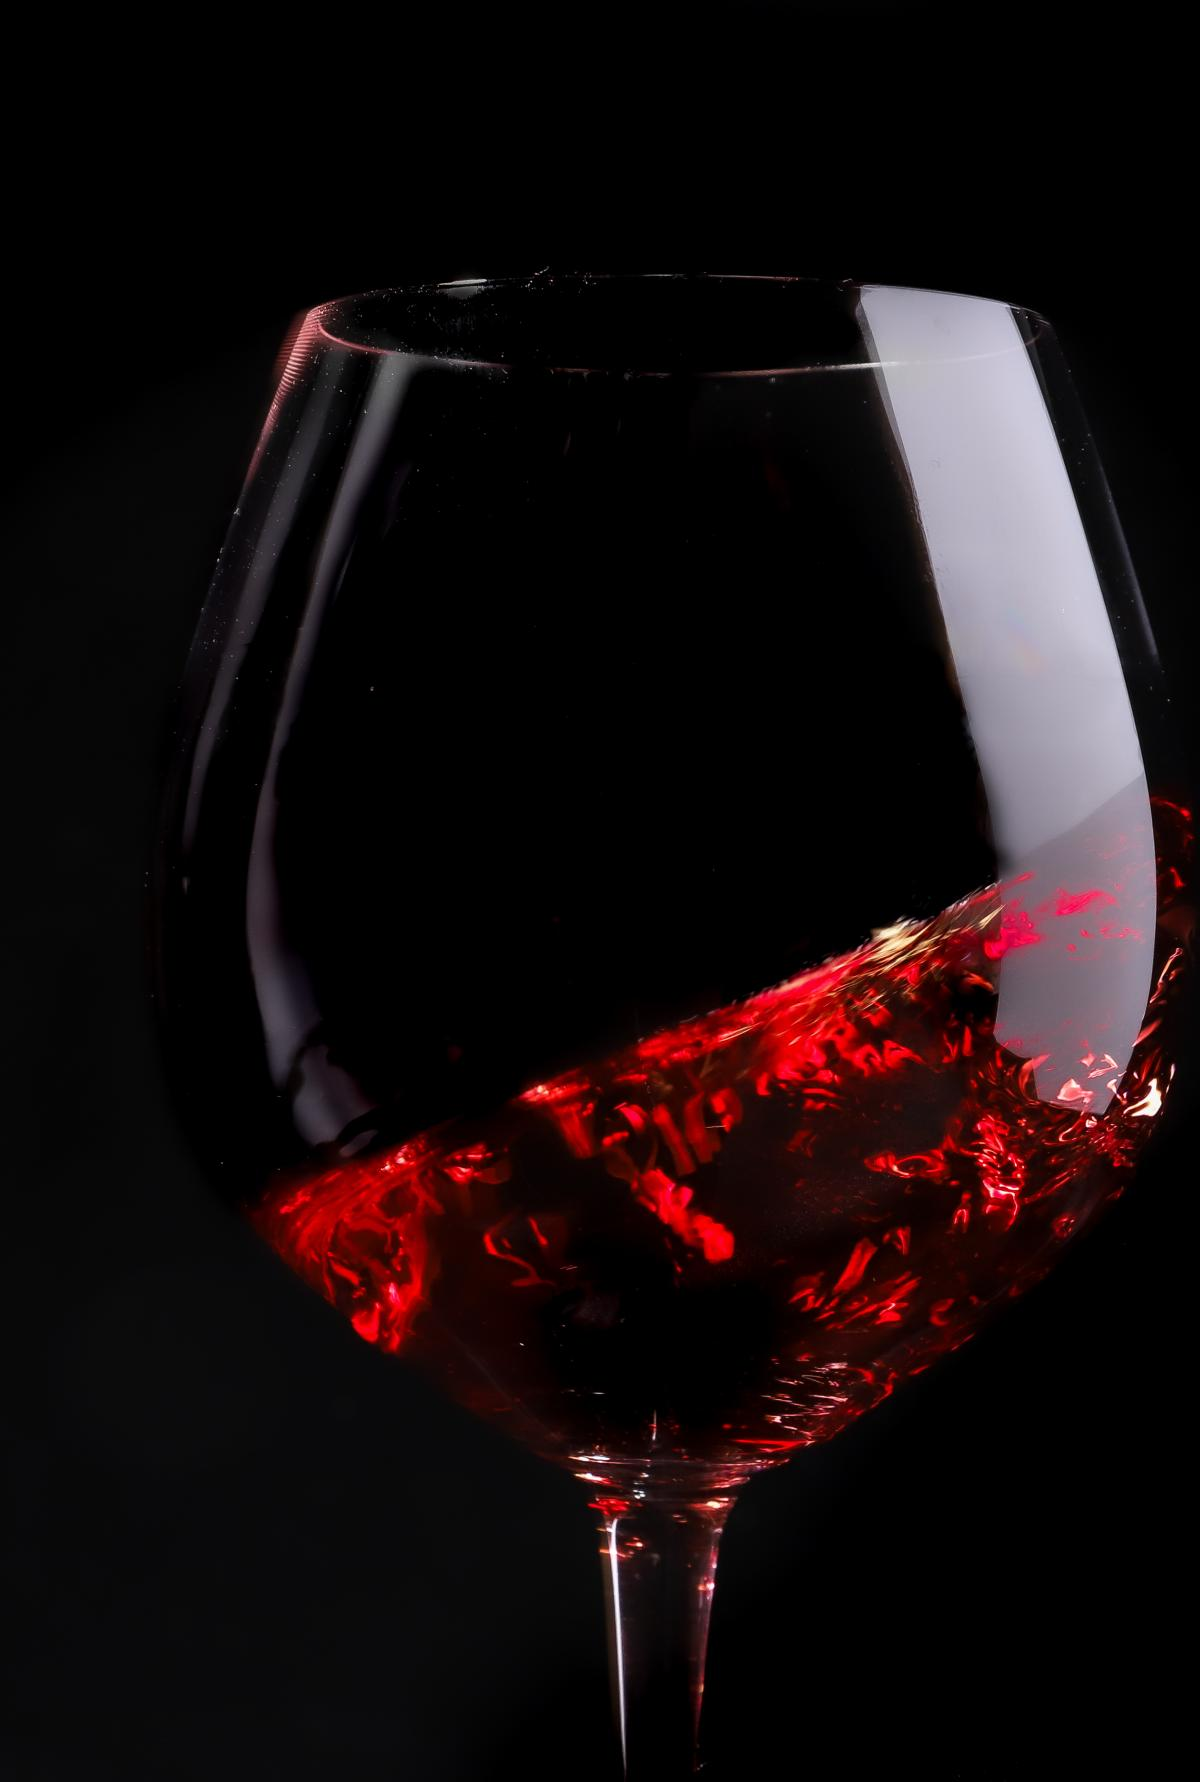 Swirling glass of Dropstone Pinot Noir against a black background